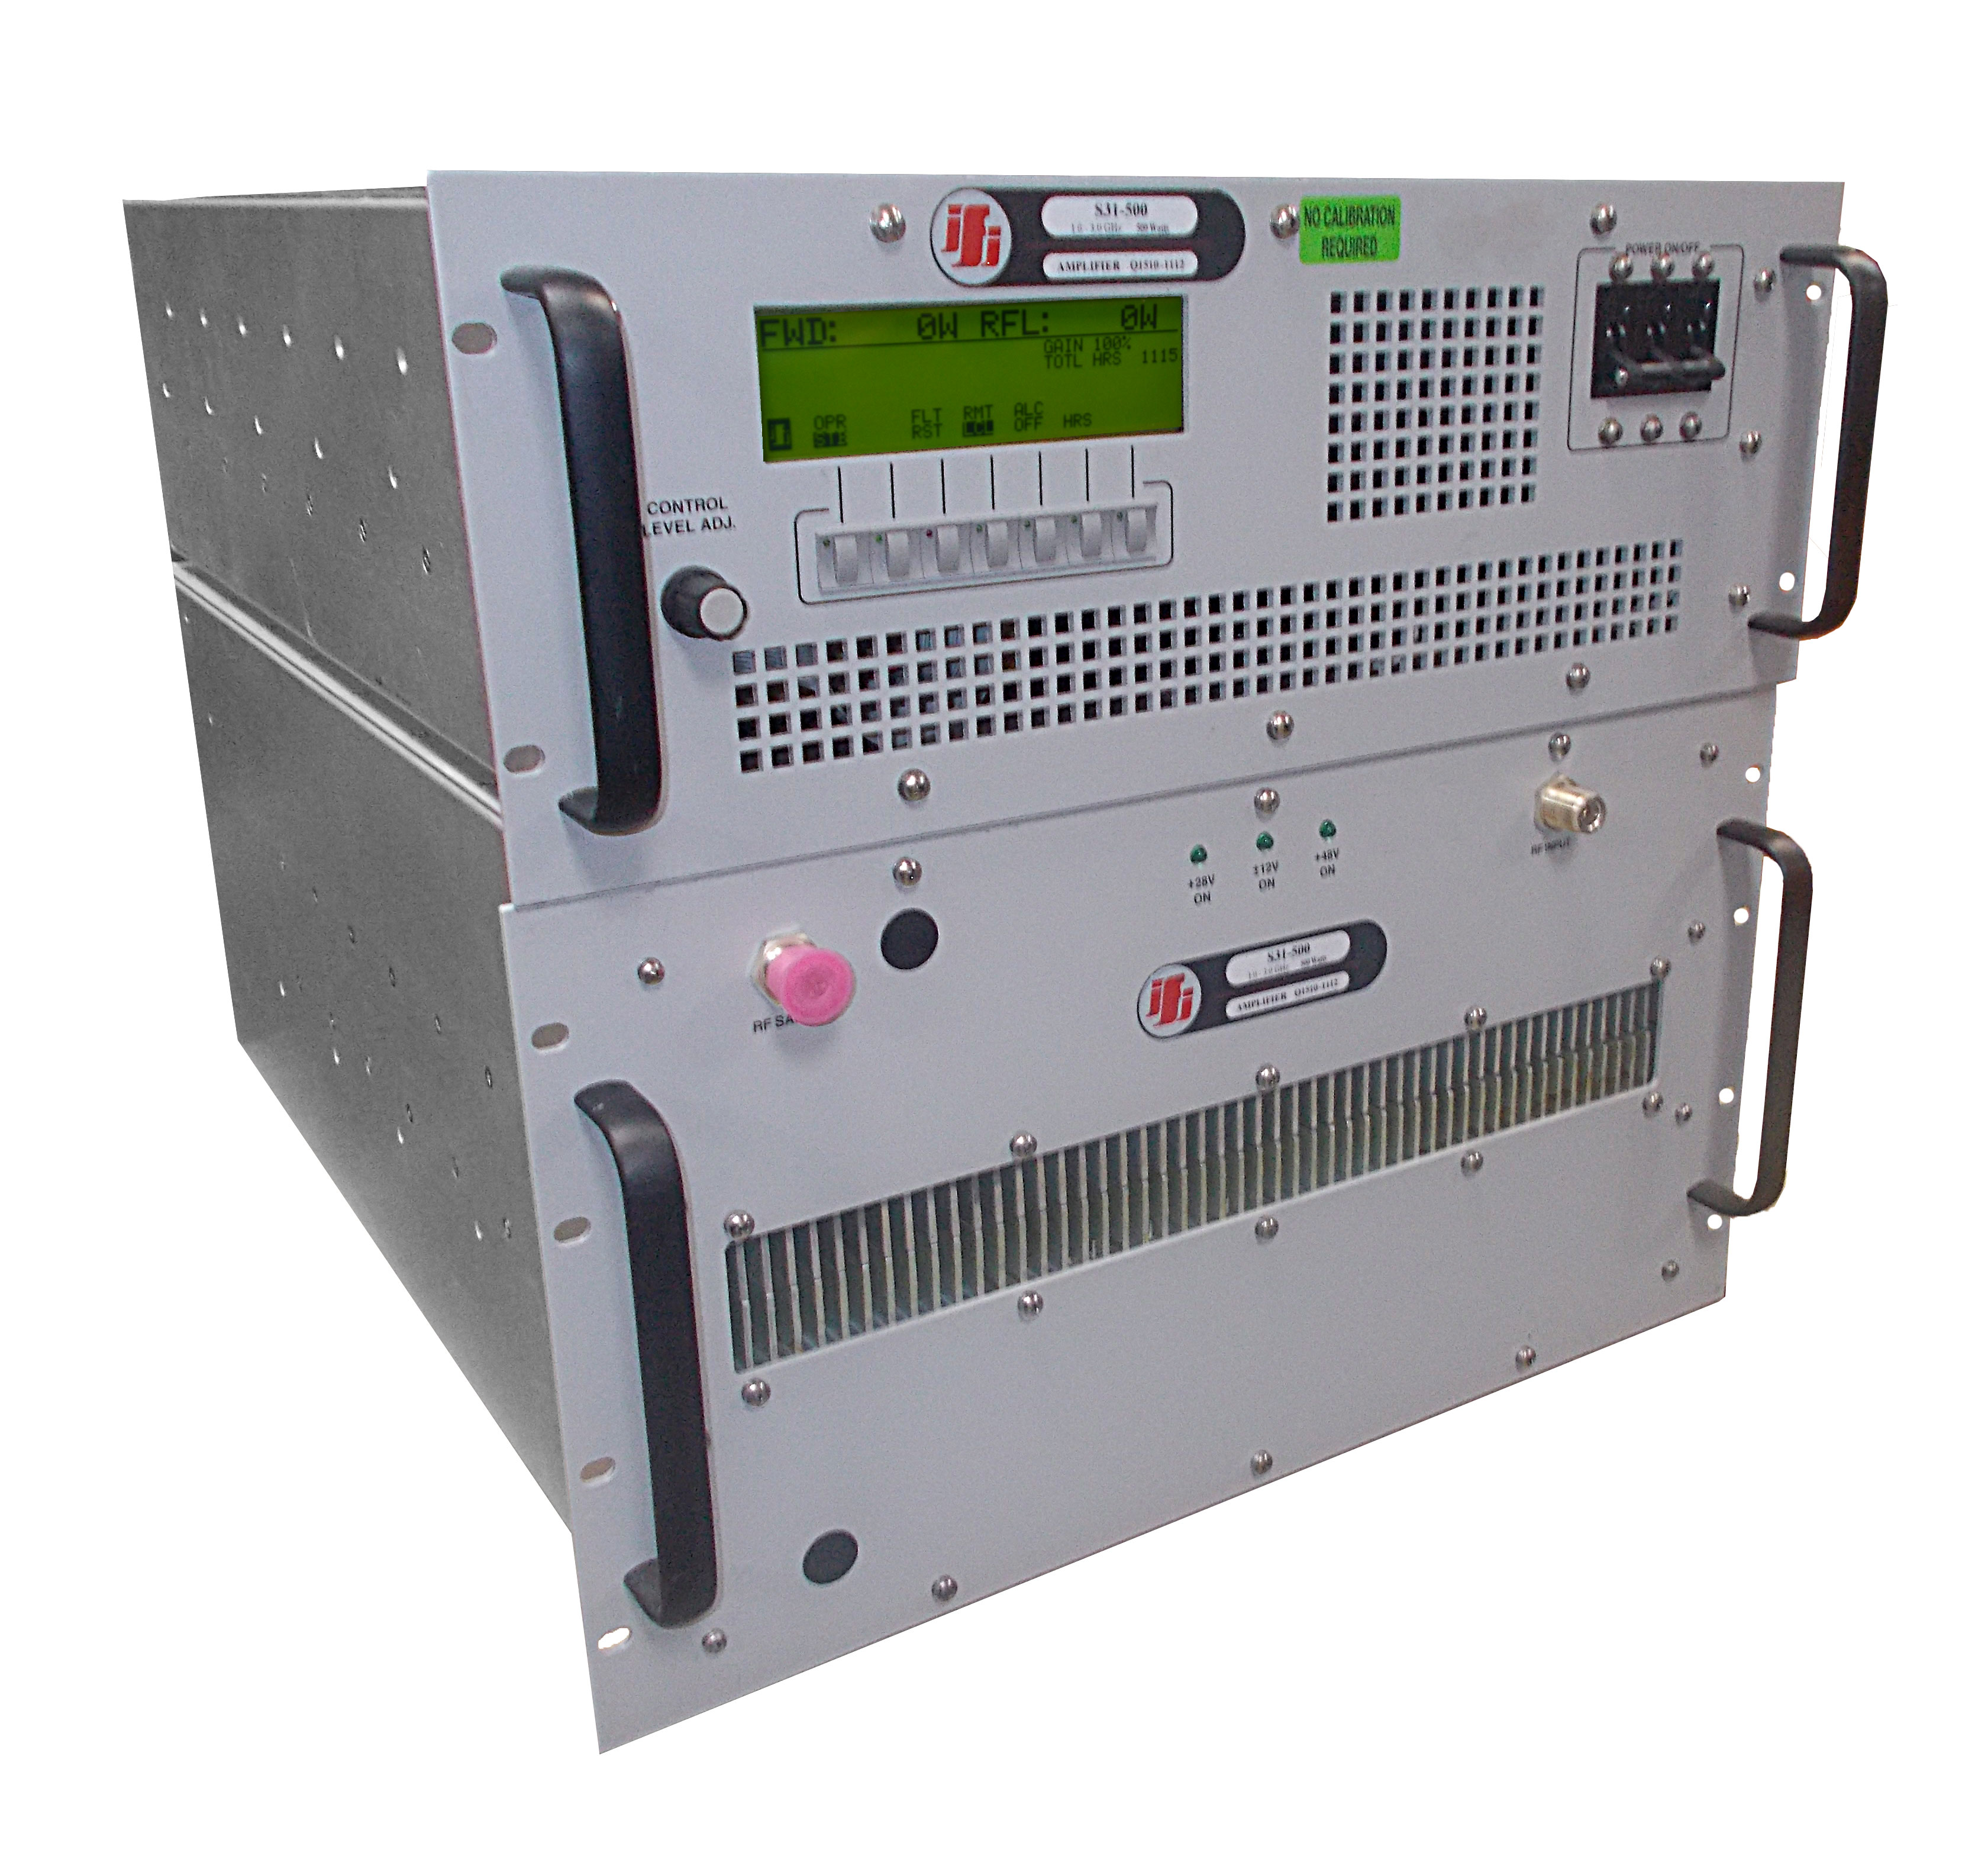 Rent IFI-S31-500 800 MHz - 3 GHz 500 Watt Solid State RF Amplifier